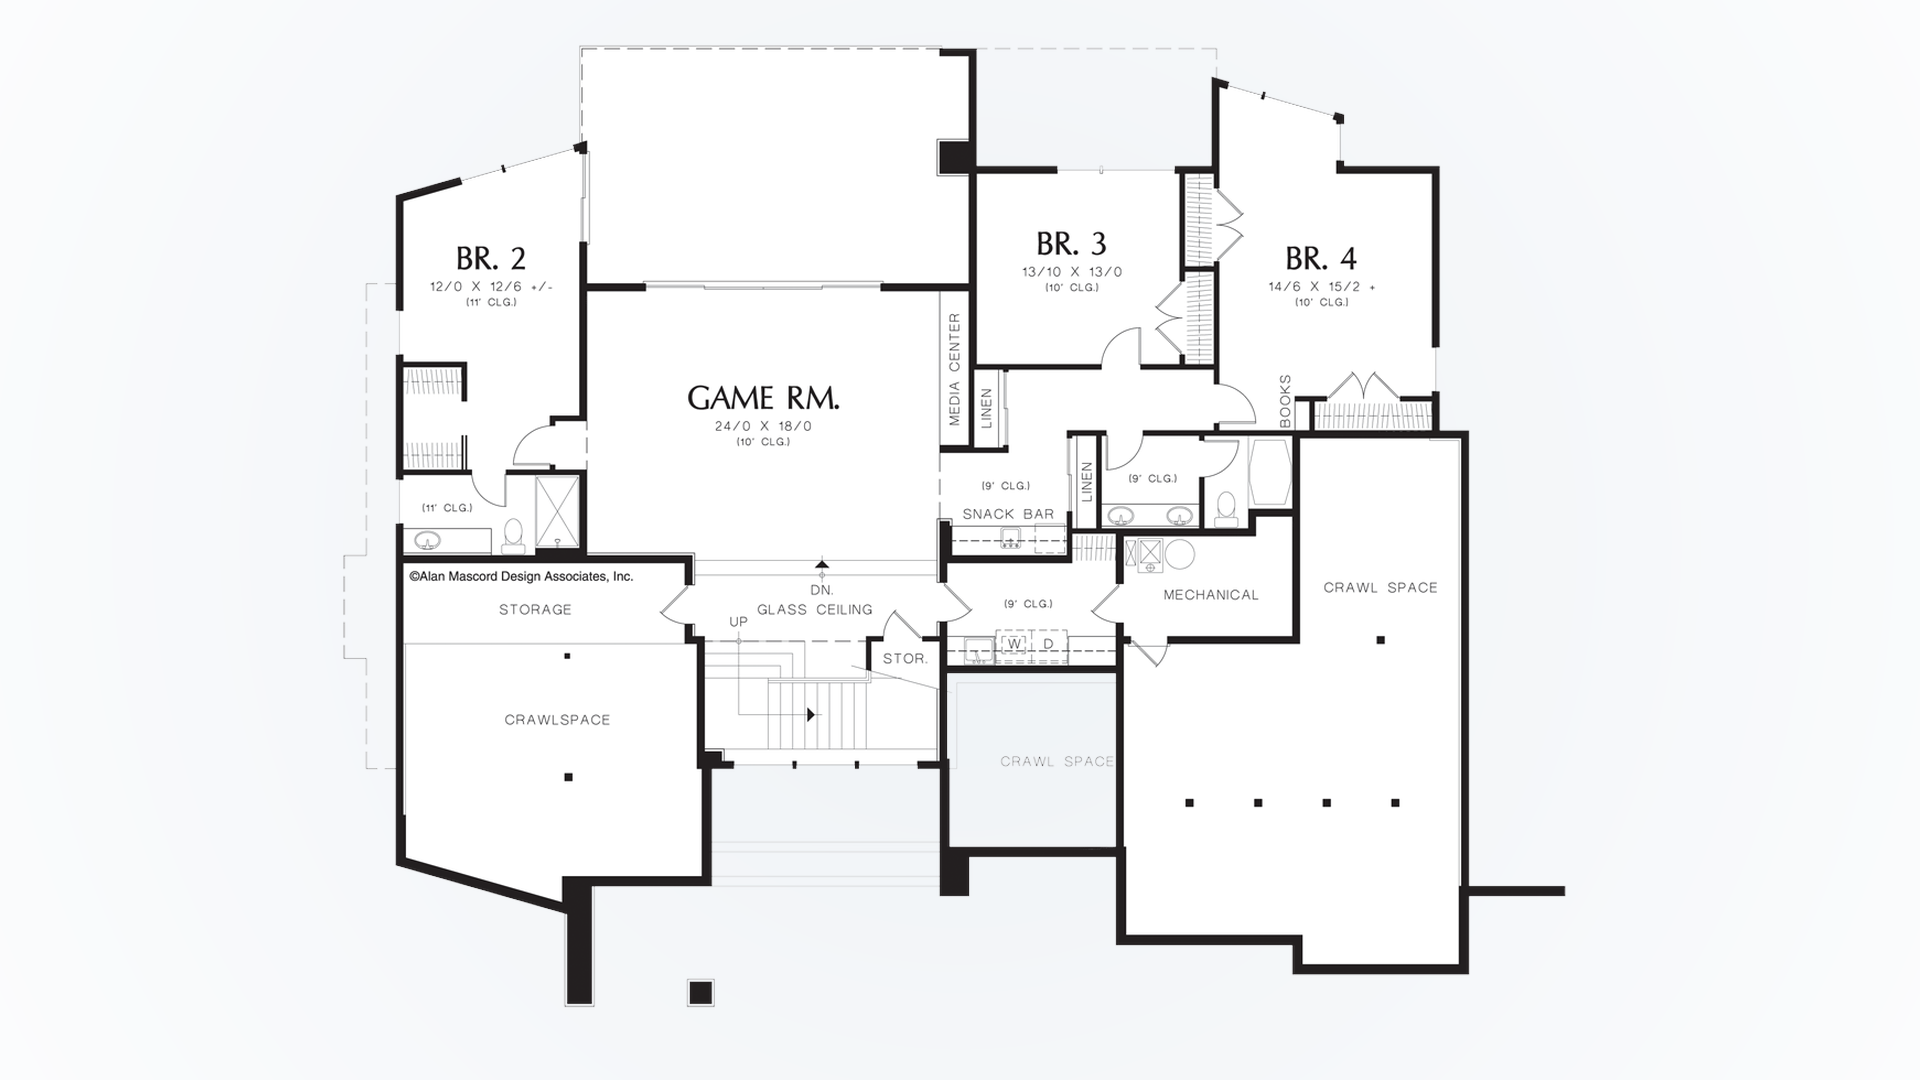 Awesome Crawl Space House Plans Images